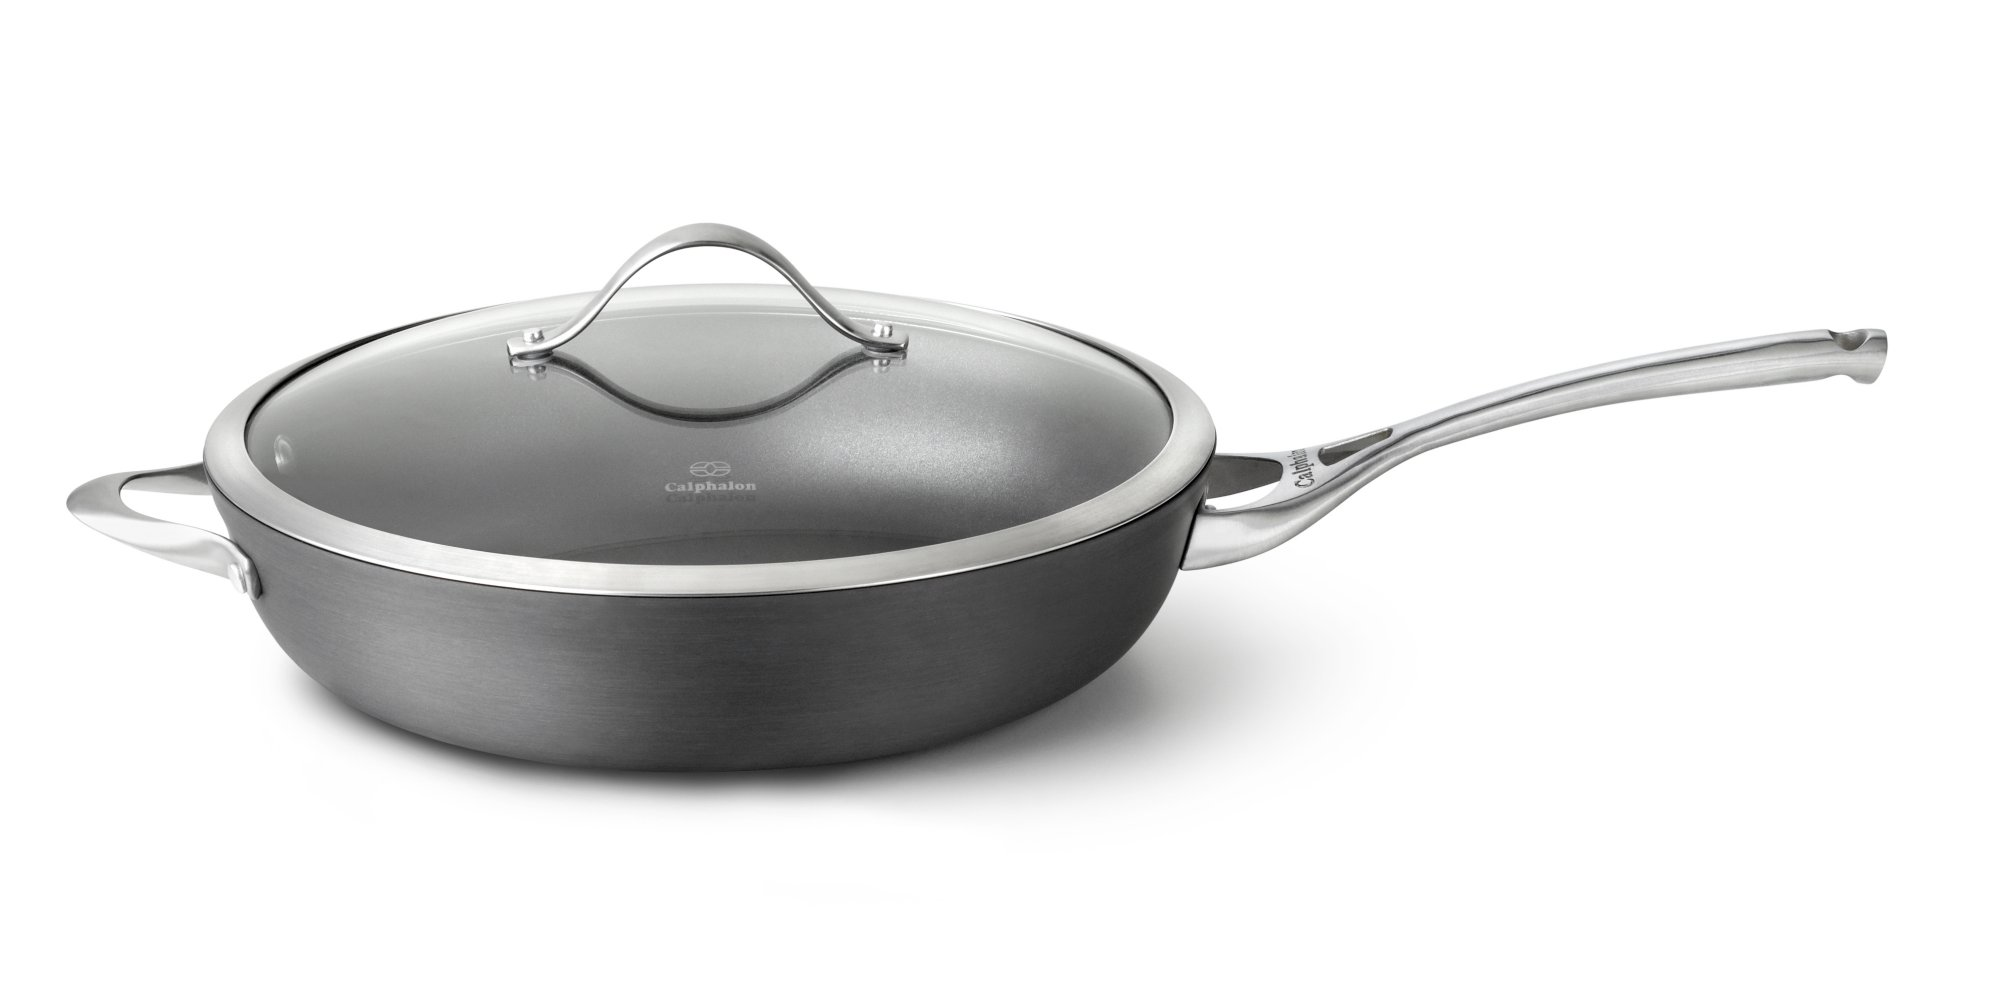 Calphalon Contemporary Nonstick 13-in. Deep Skillet with Cover